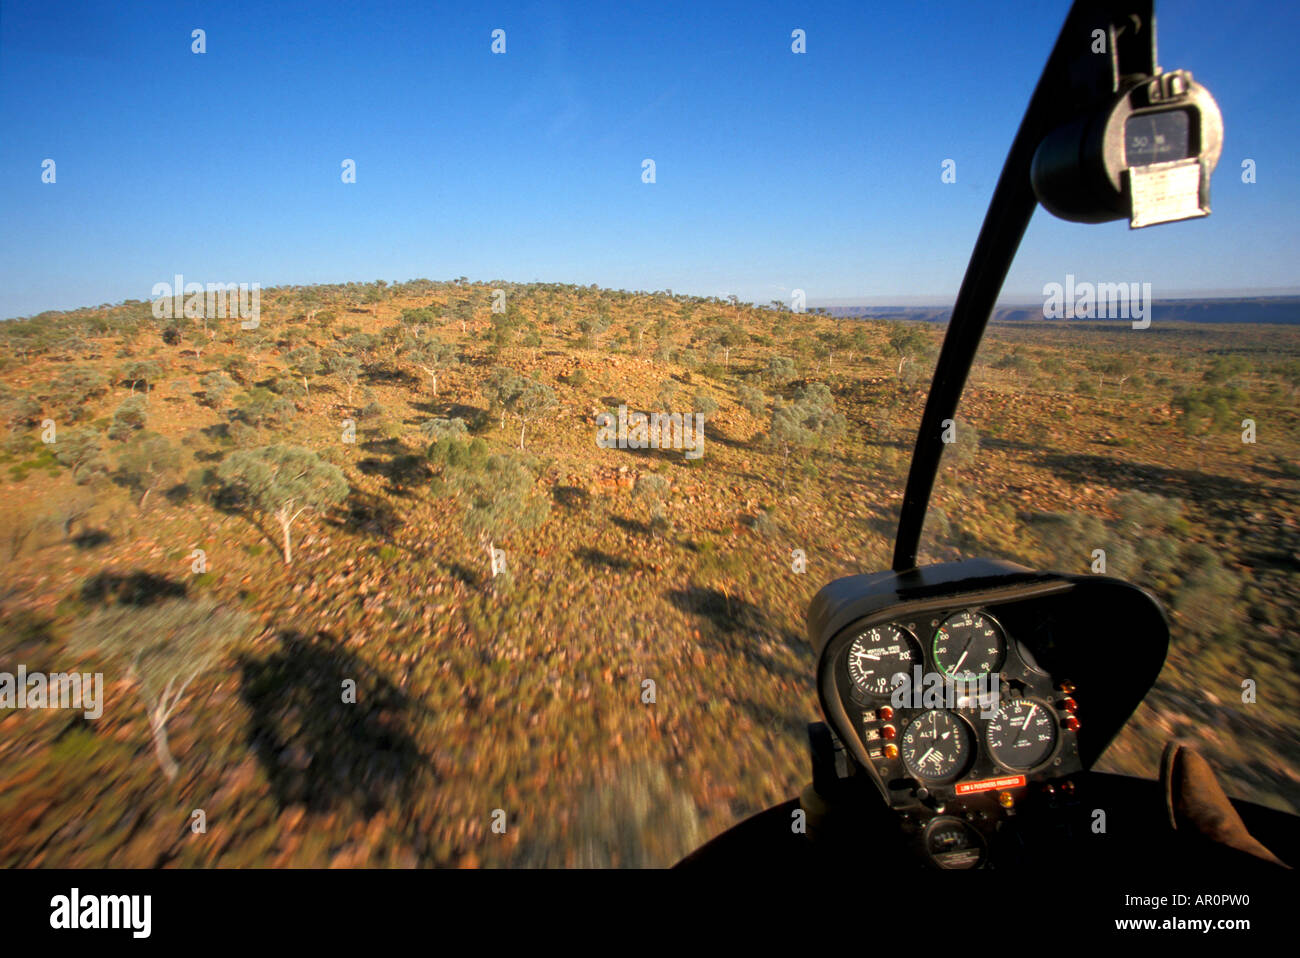 aerial view out of helicopter window, outback Australia - Stock Image